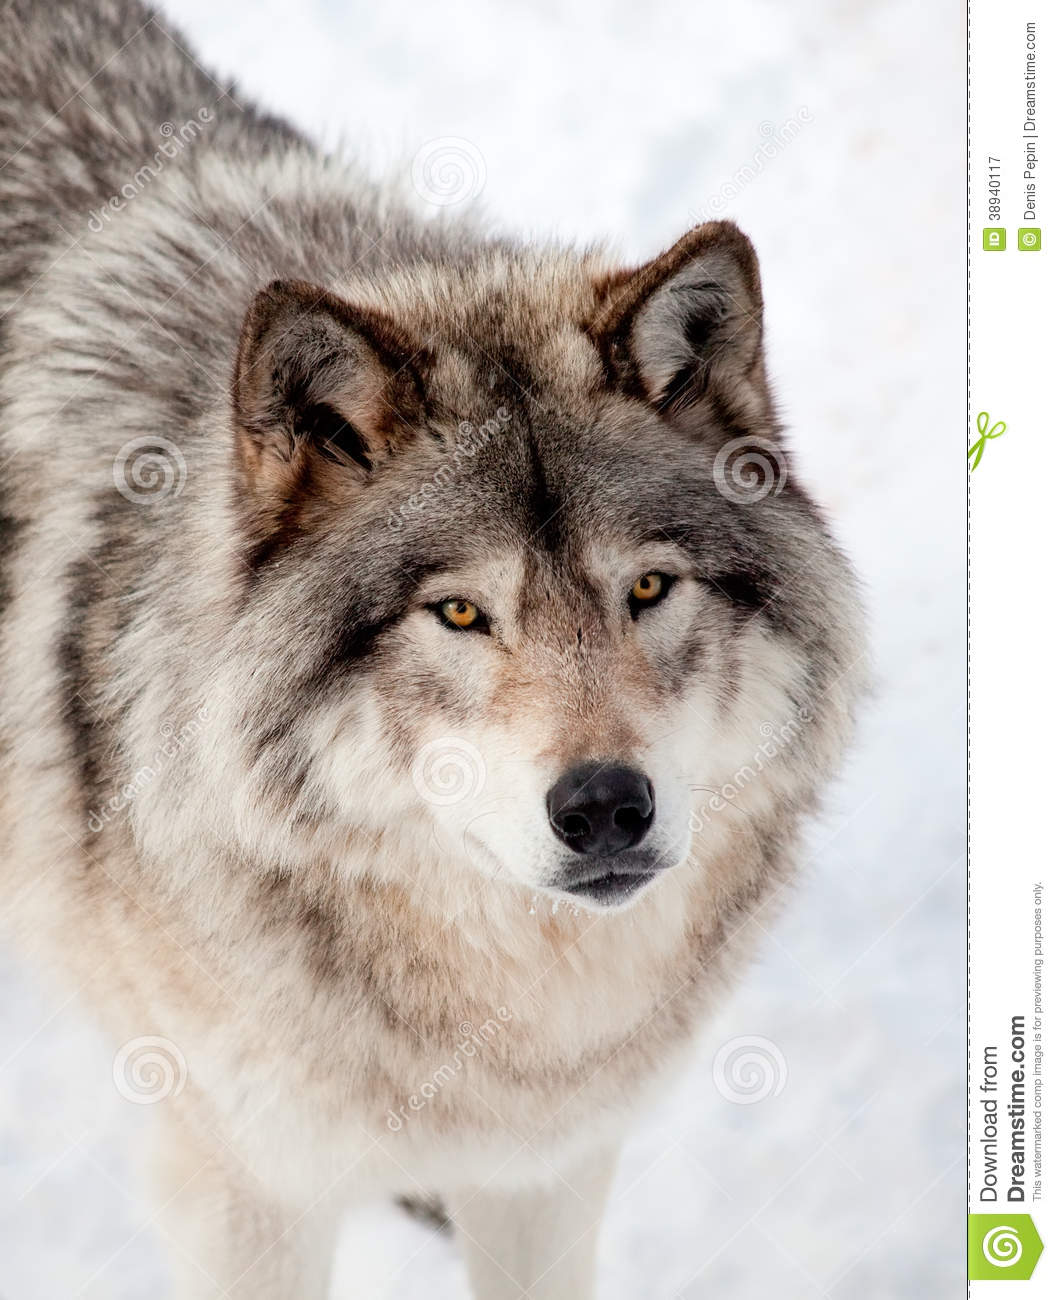 gray wolf in the snow looking up at the camera stock photo